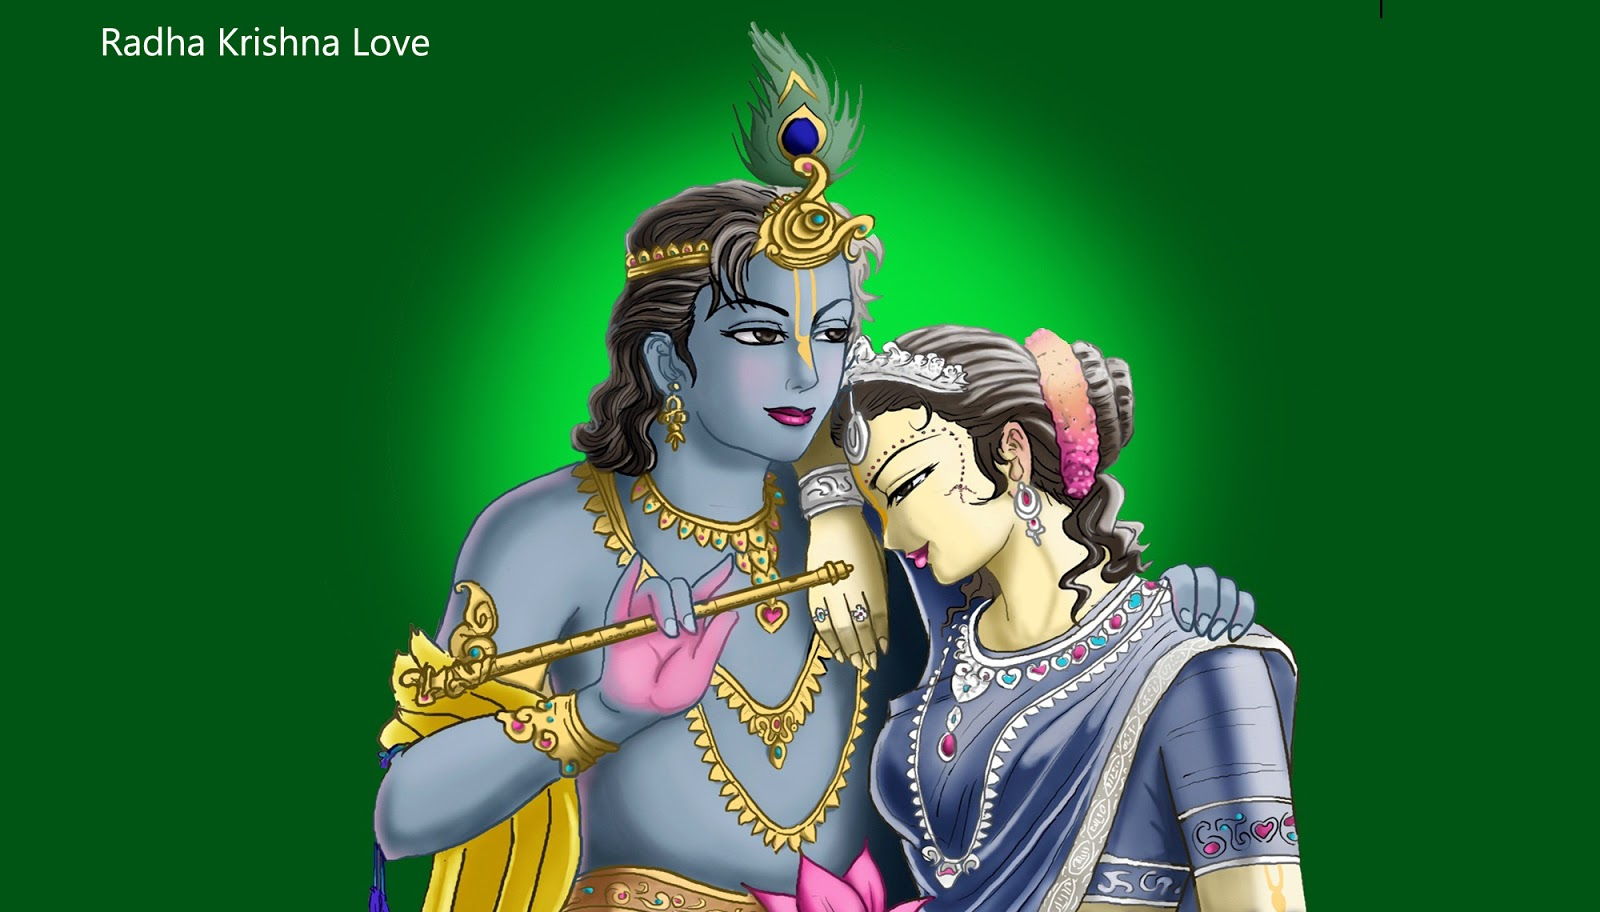 Beautiful Images of Lord Krishna and Radha